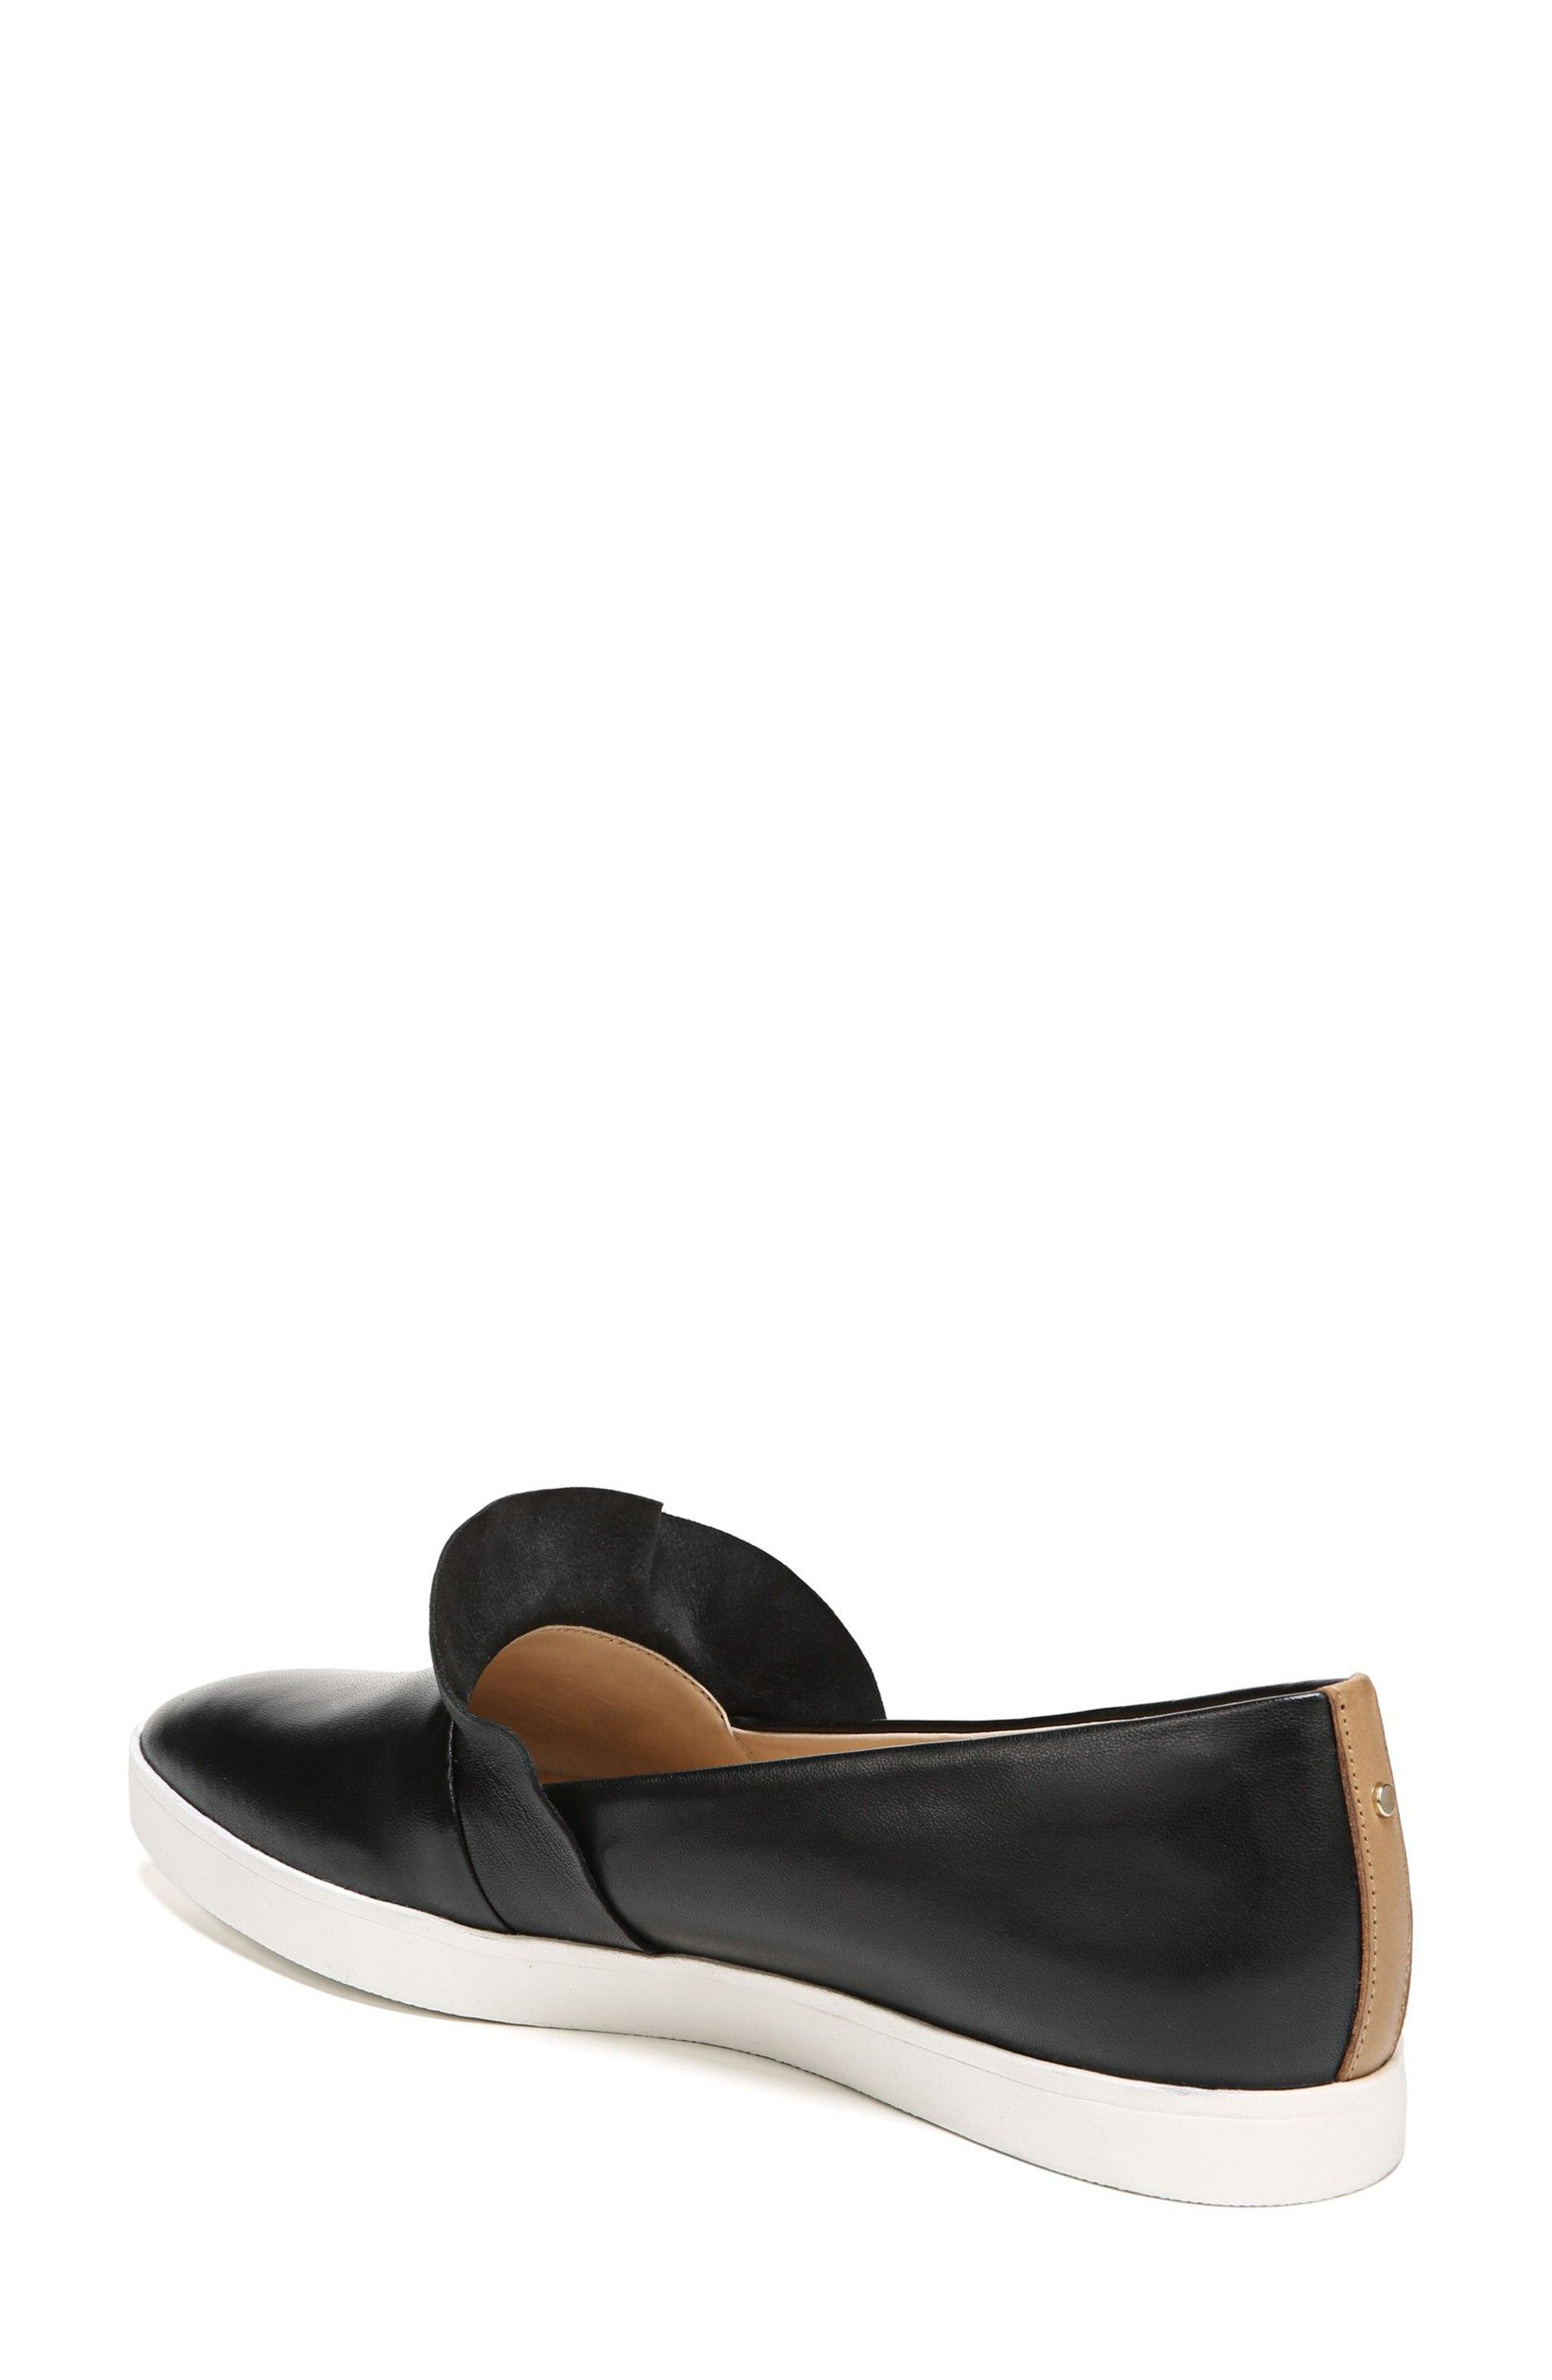 Vienna Slip-On Sneaker,                             Alternate thumbnail 4, color,